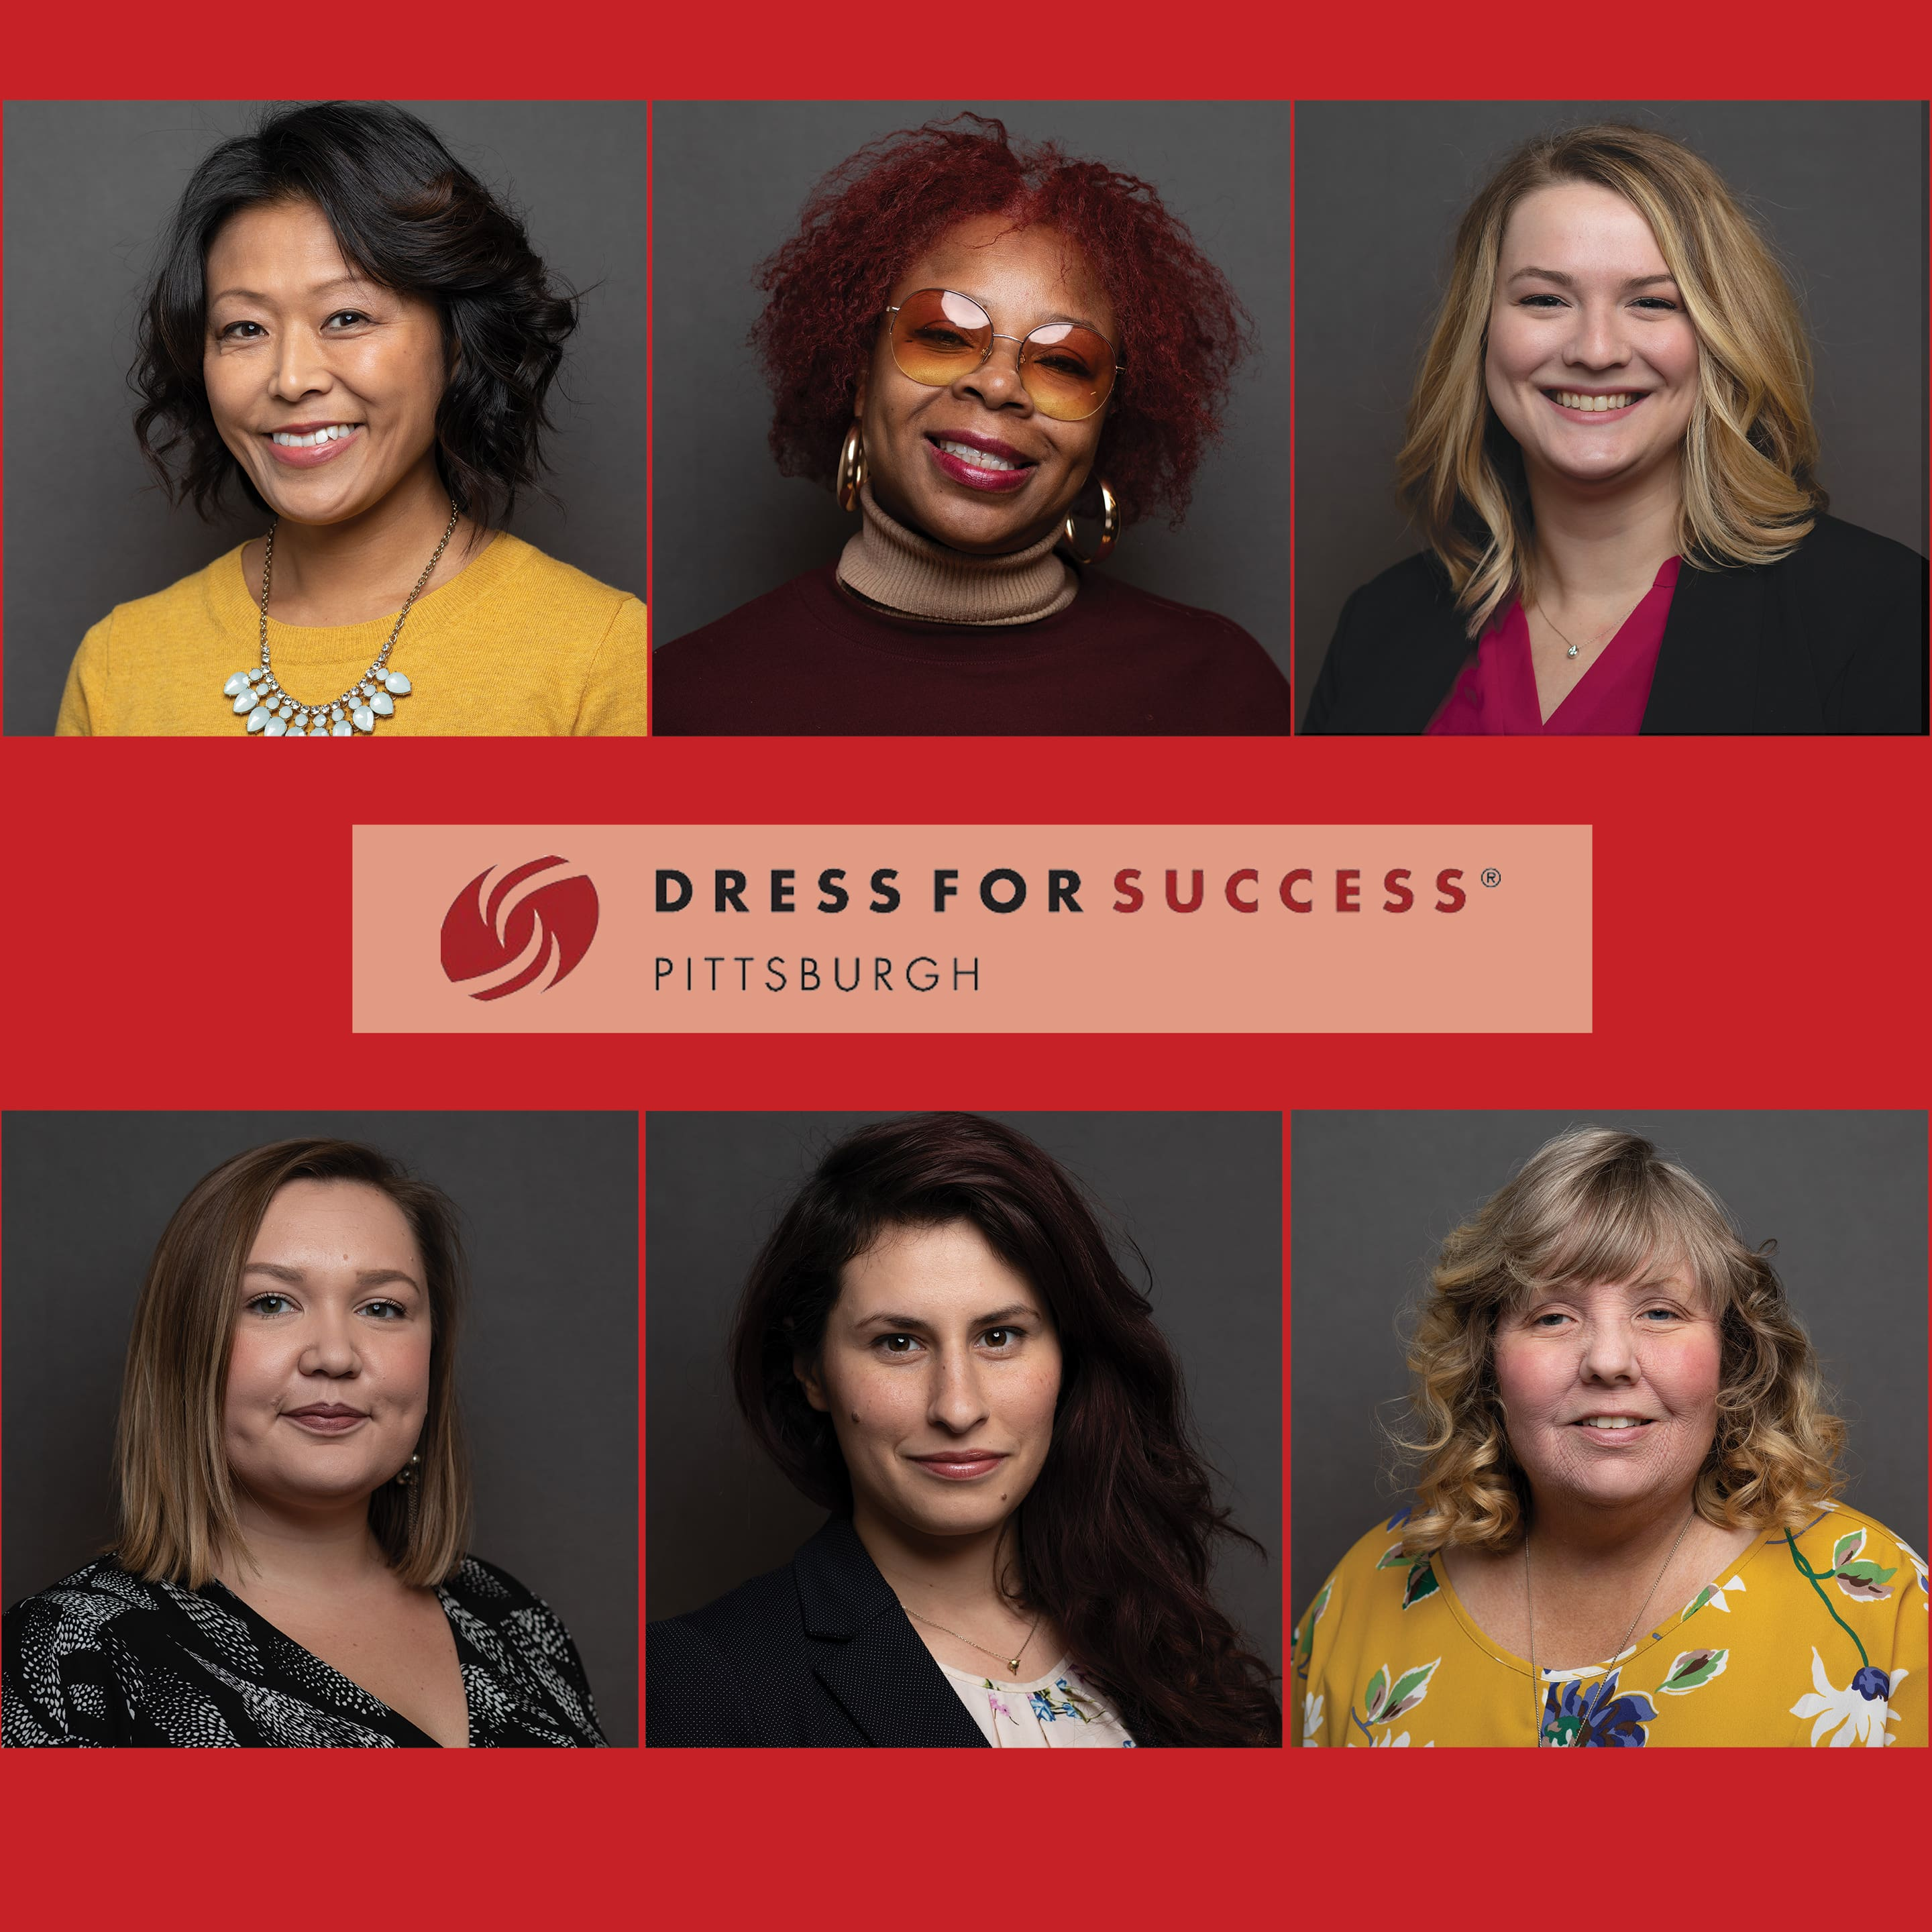 Dress for Success Pittsburgh